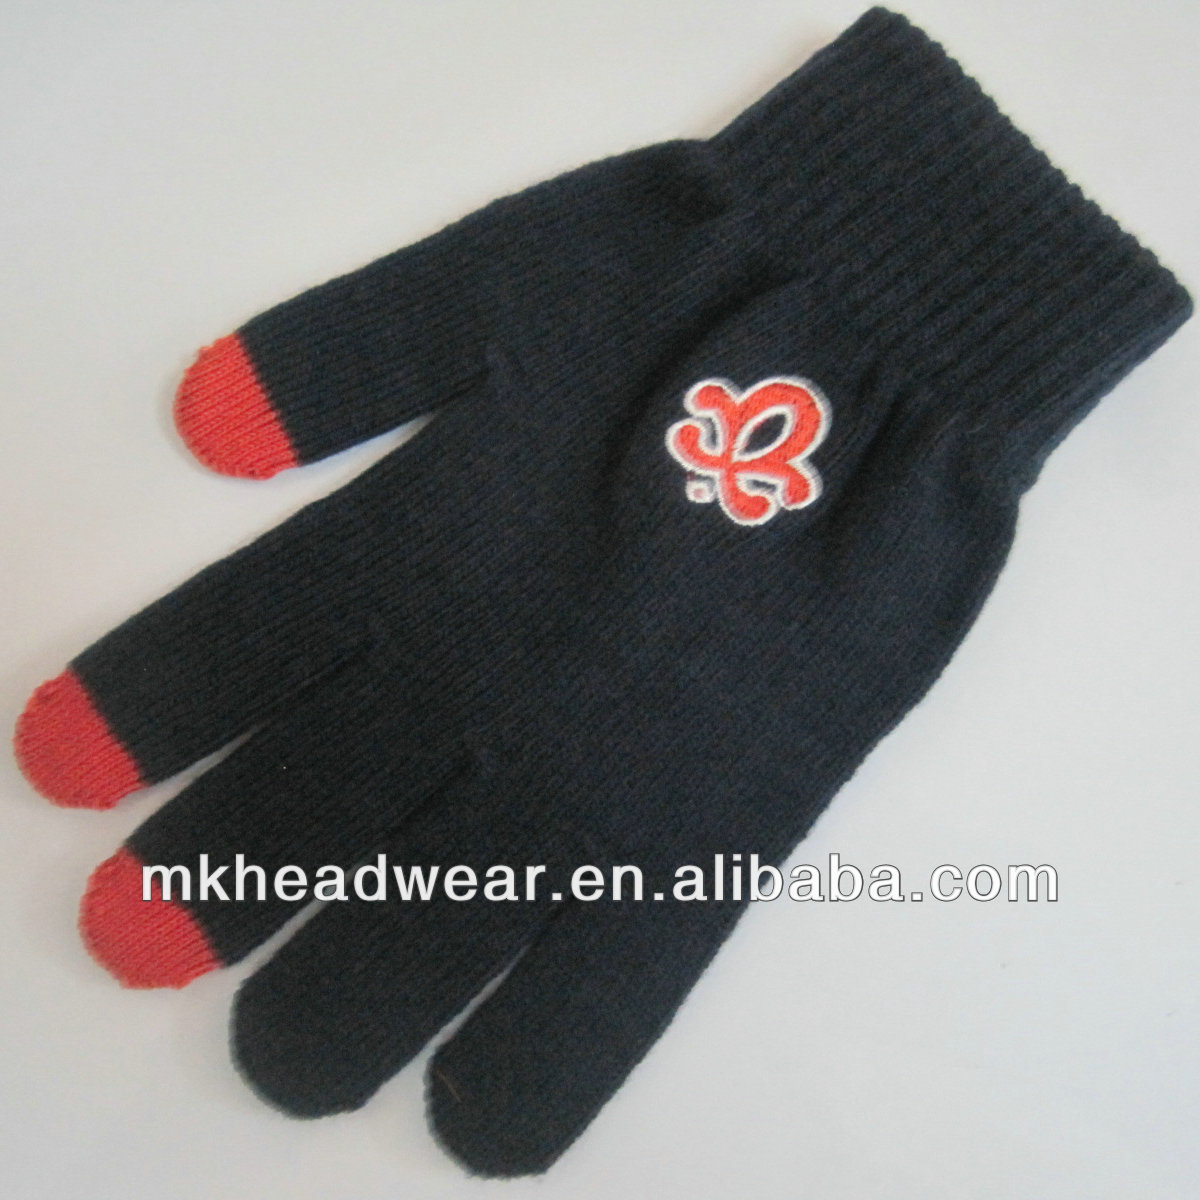 Black touch screen glove with embroidery logo